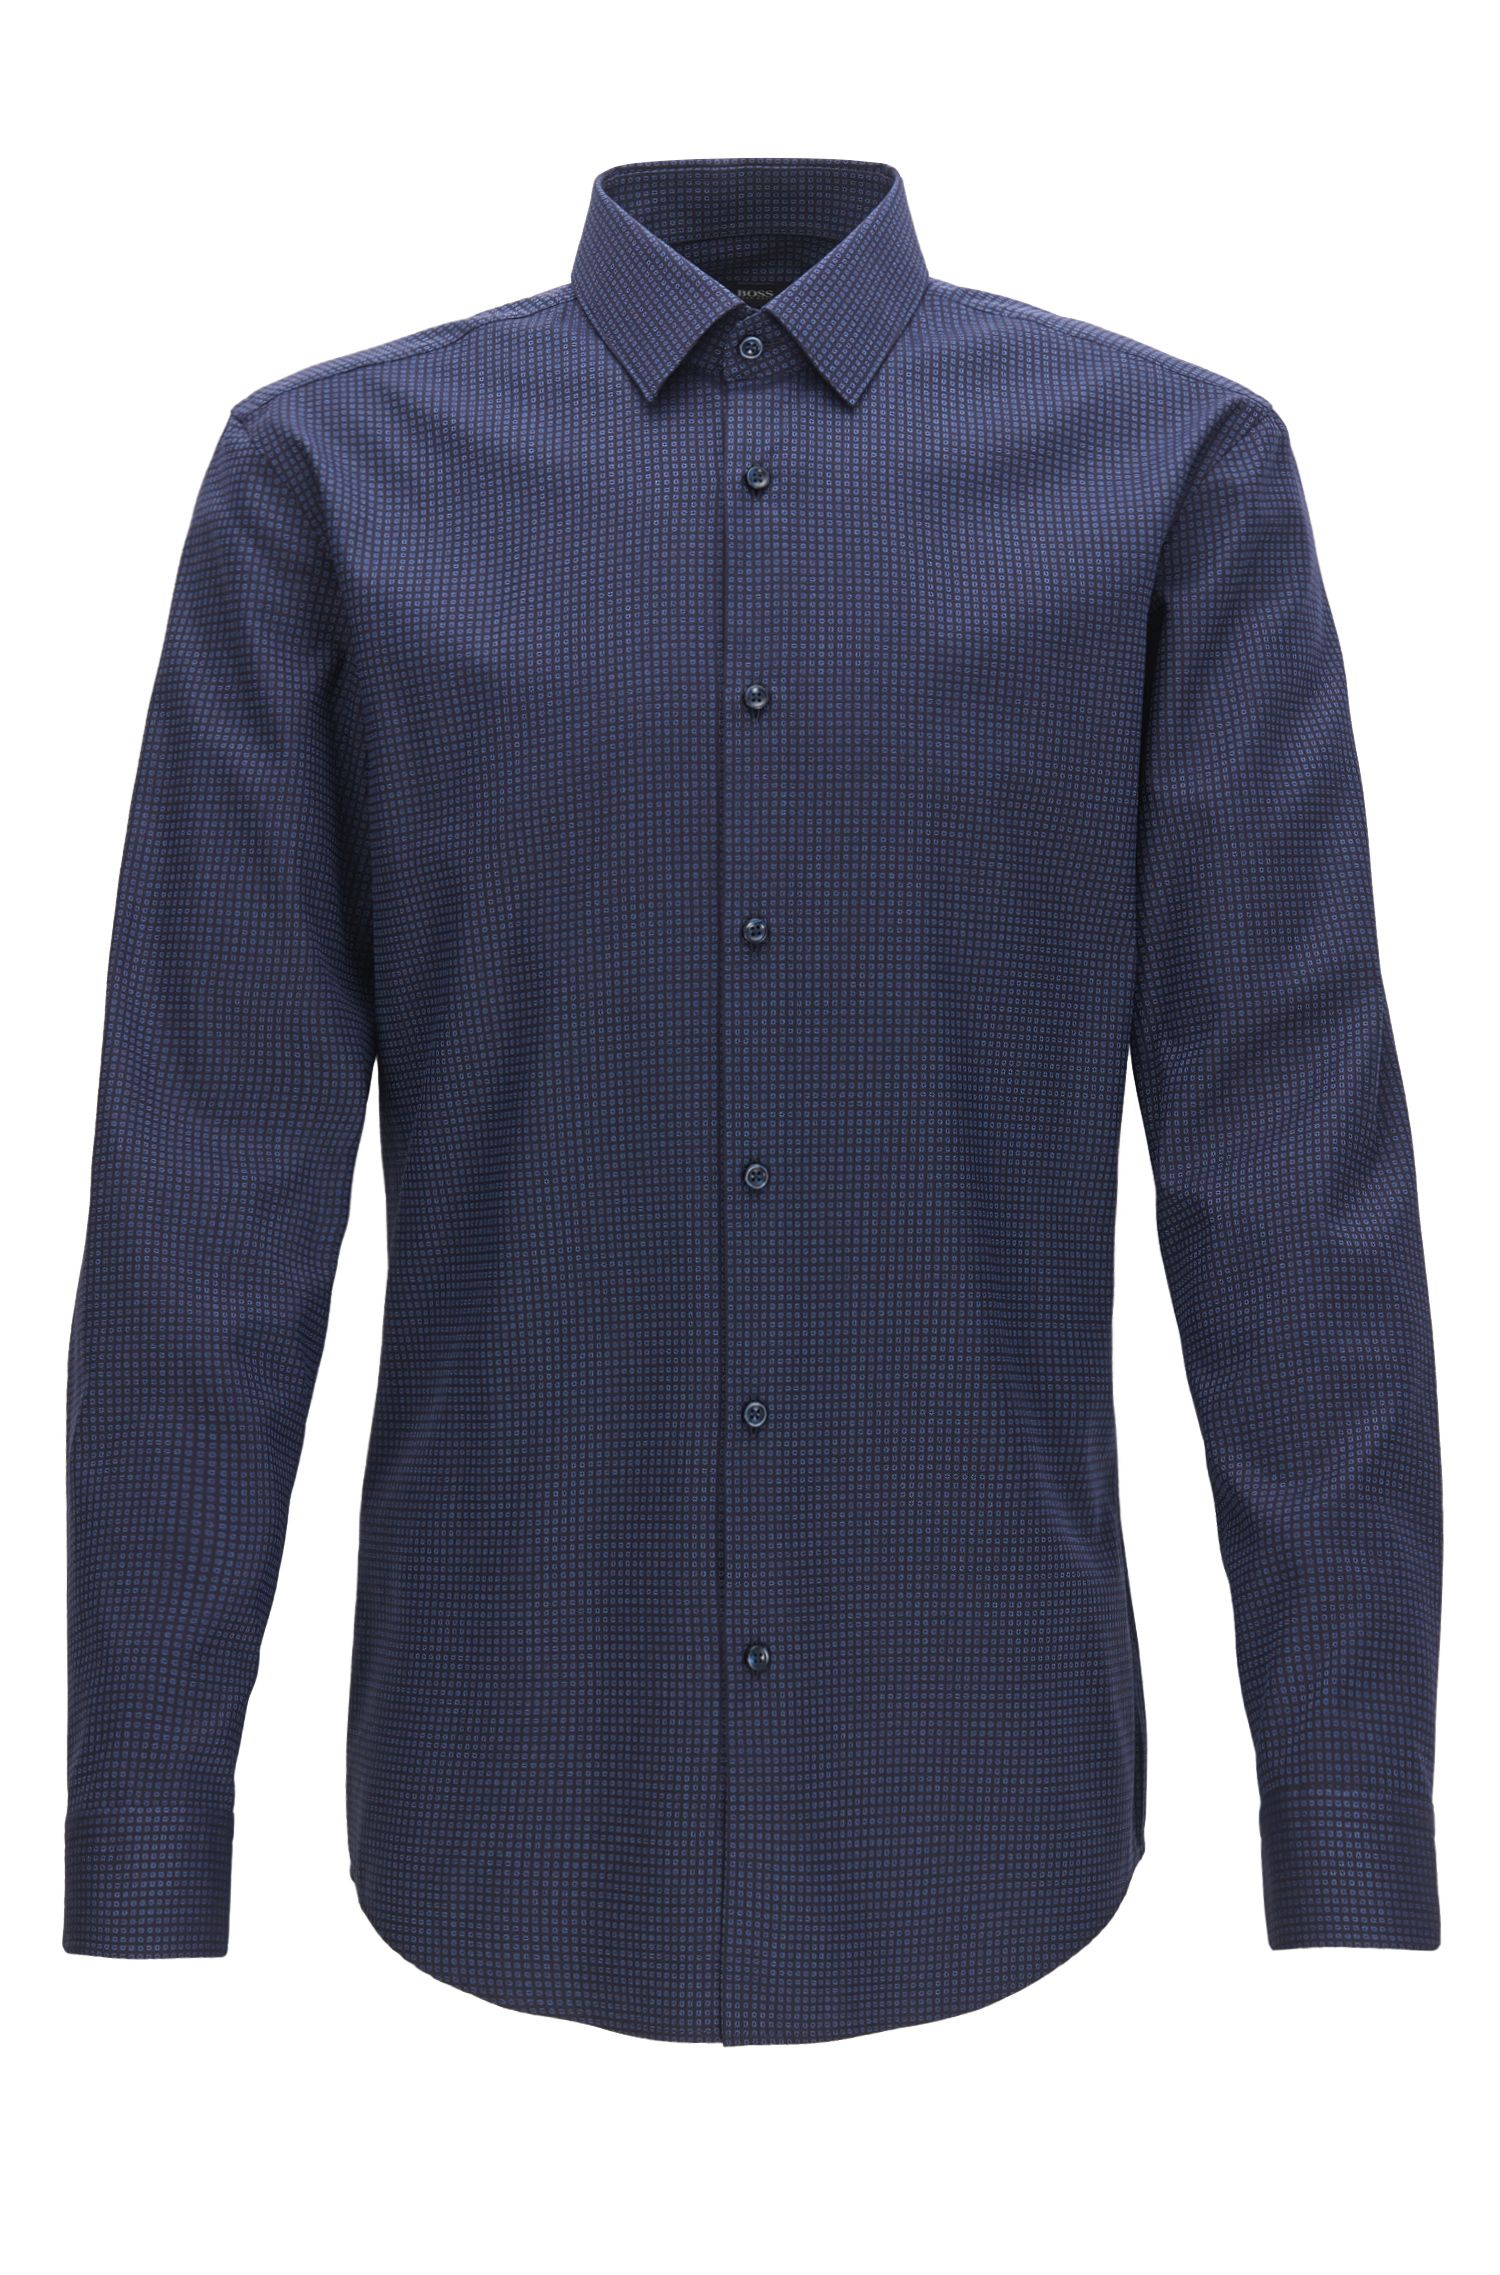 Patterned Stretch Cotton Dress Shirt with Stretch Tailoring, Slim Fit | Isko